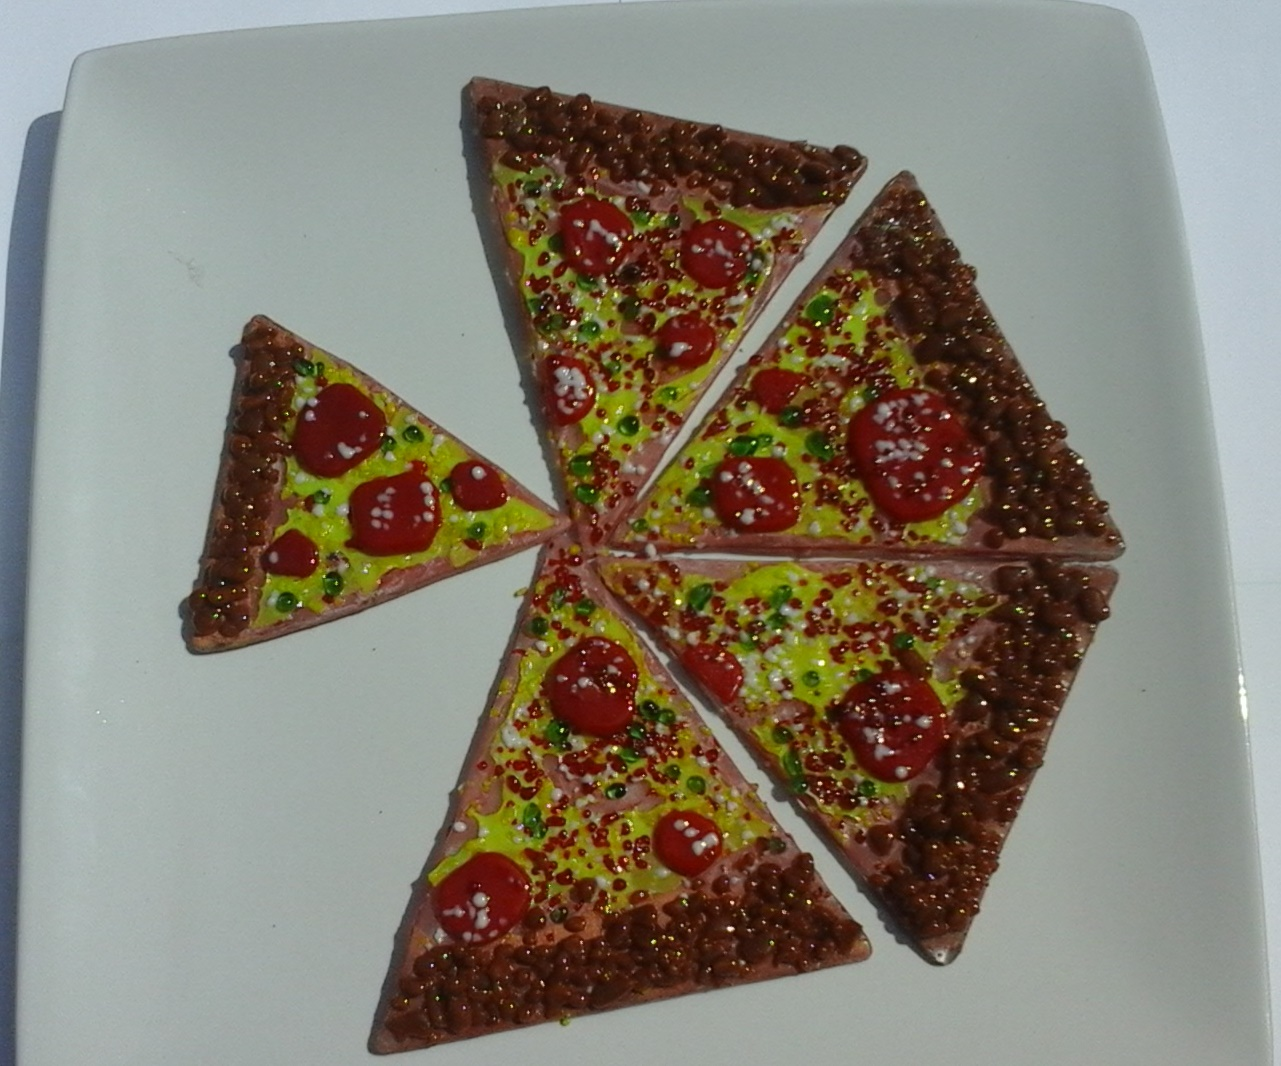 Glass pizza